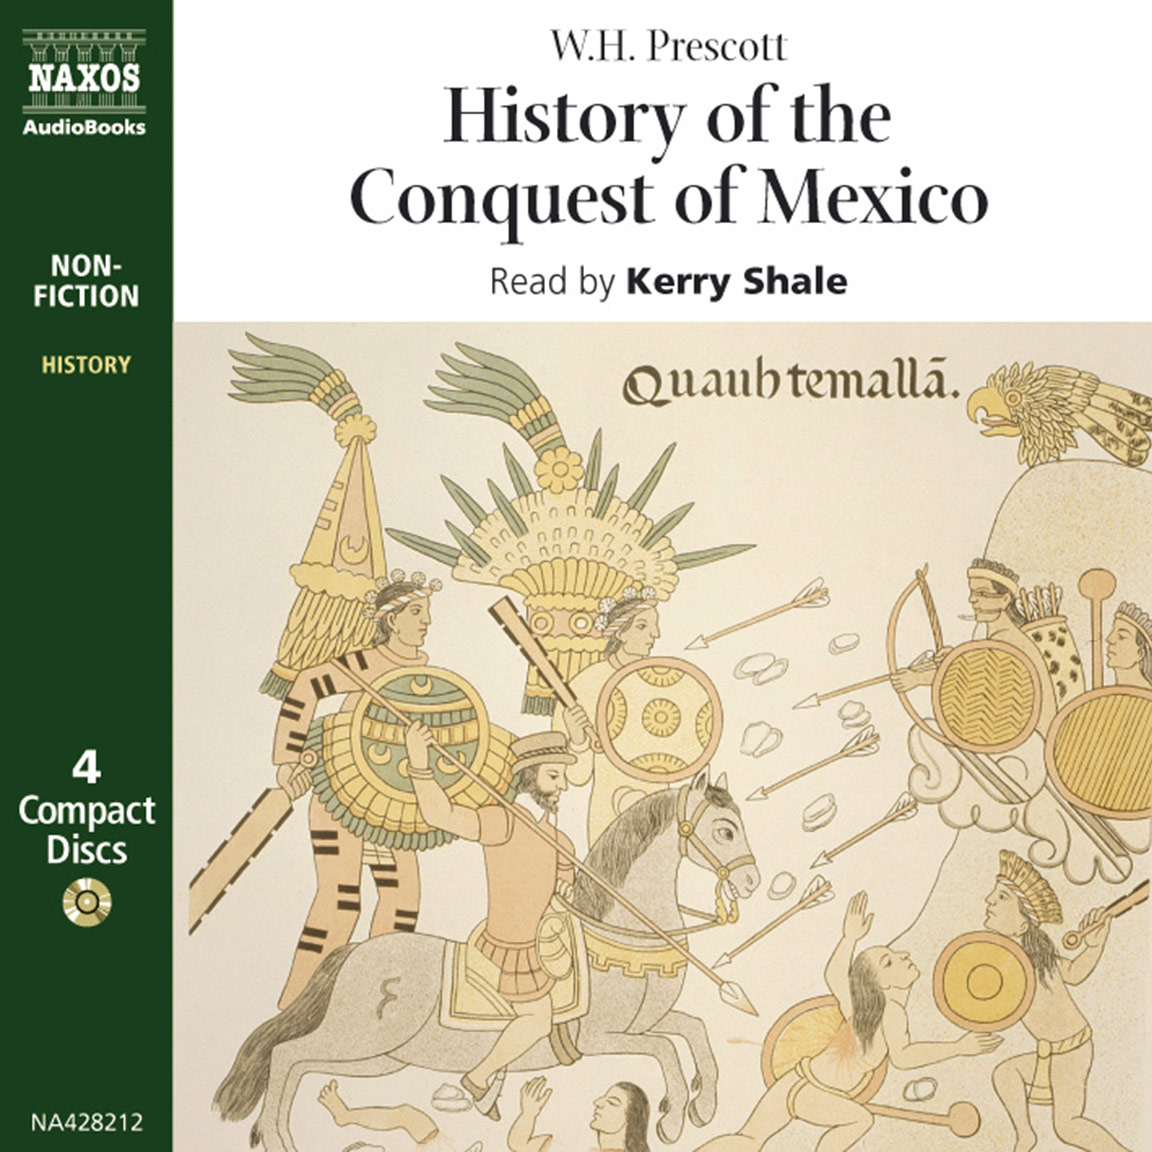 History of the Conquest of Mexico (abridged)